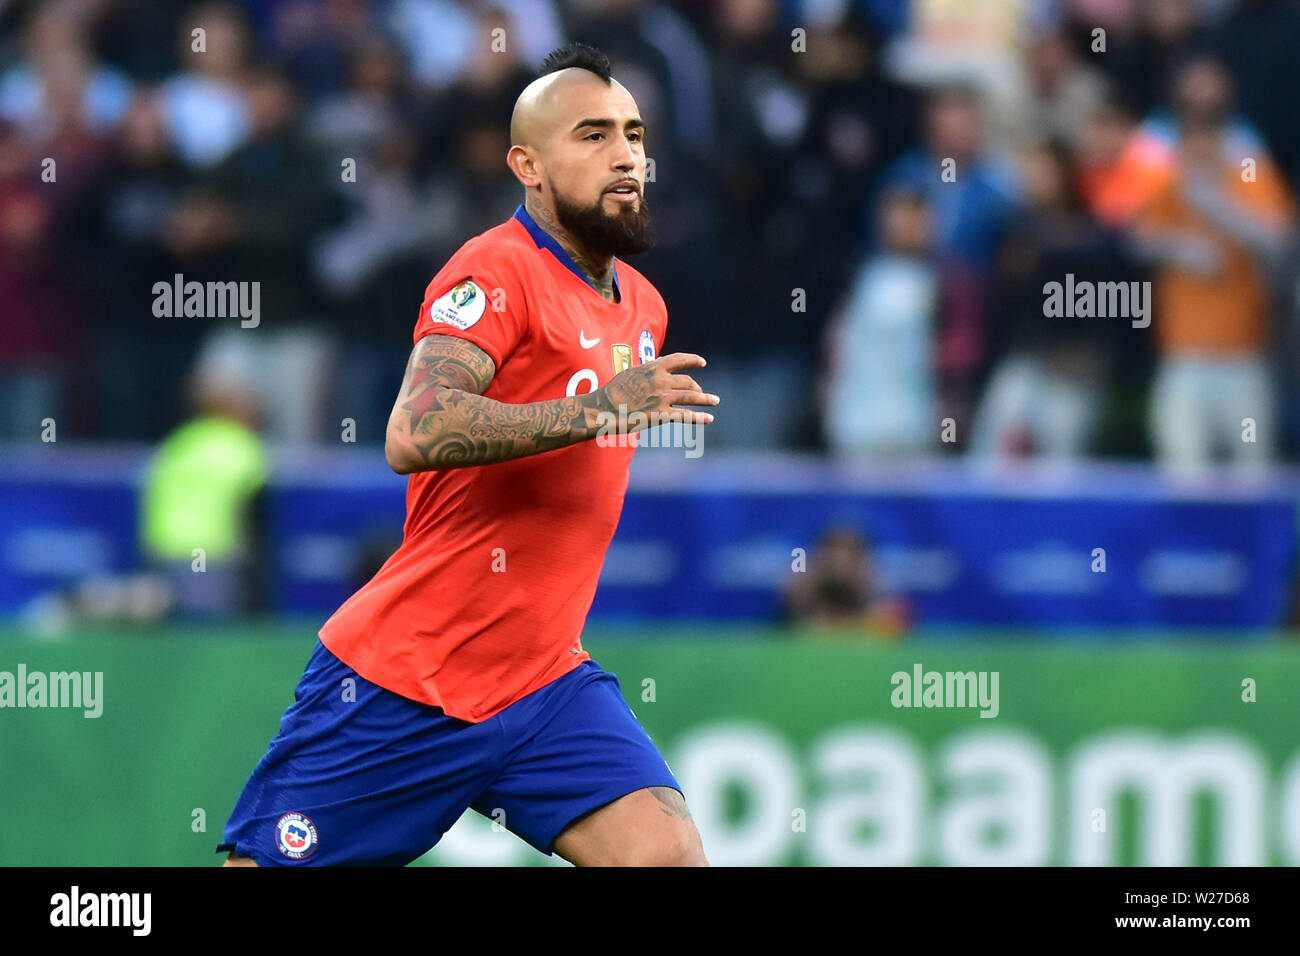 Sao Paulo, Brazil, July 06nd, 2019 -  - Match between Argentina and Chile, valid for the competition of 3rd place of CONMEBOL Copa América Brasil 2019, held in the Corinthians Arena, on the afternoon of this saturday, 06. (Credit: Eduardo Carmim/Alamy Live News) - Stock Image